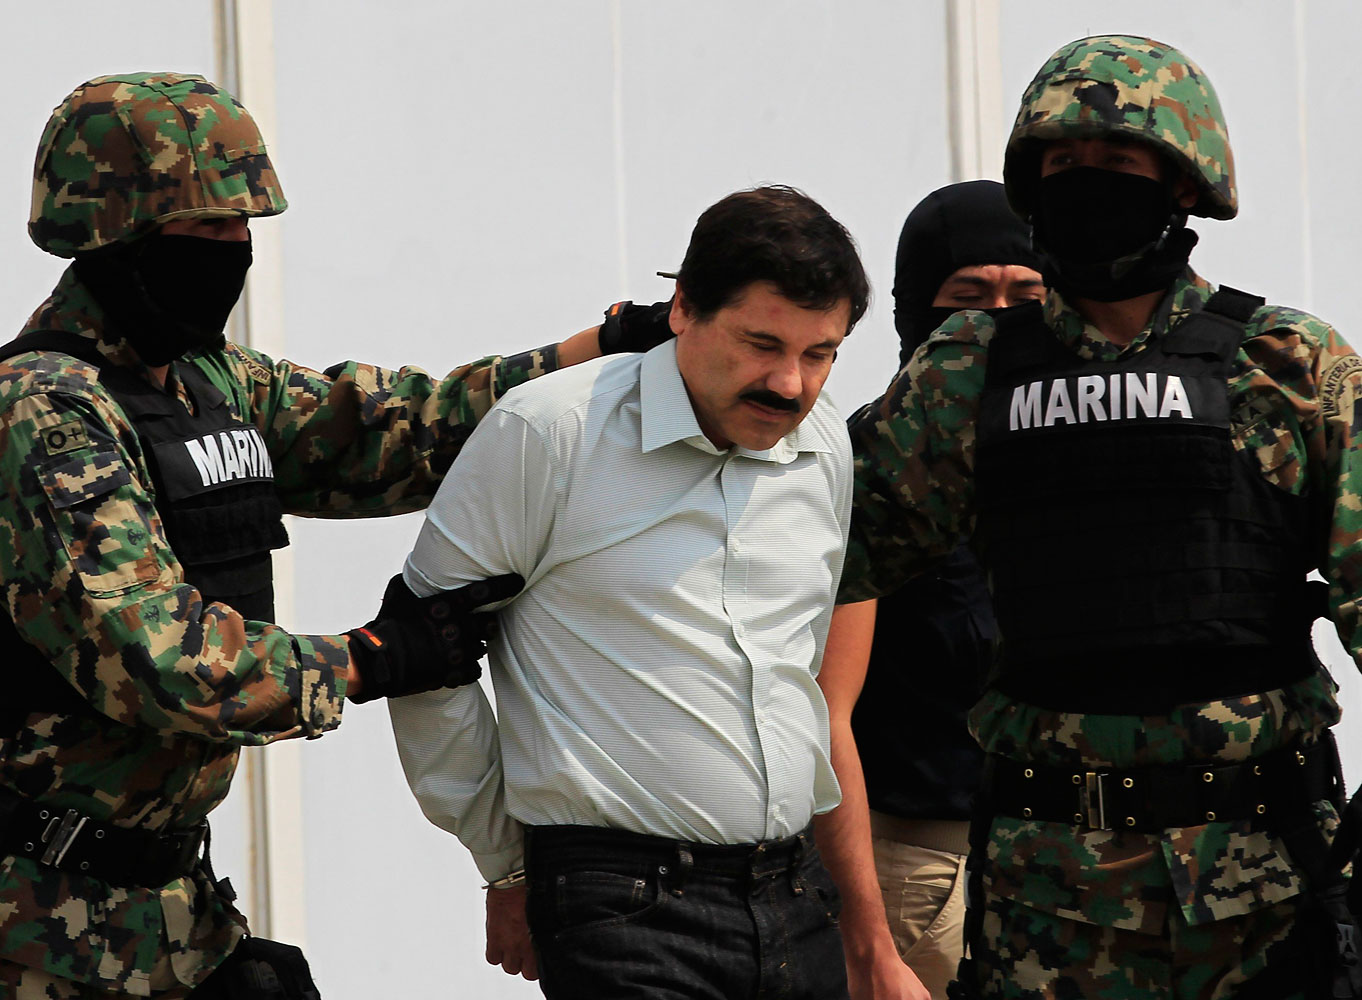 Joaquin  Shorty  Guzman is escorted by soldiers during a presentation at the Navy's airstrip in Mexico City Feb. 22, 2014.